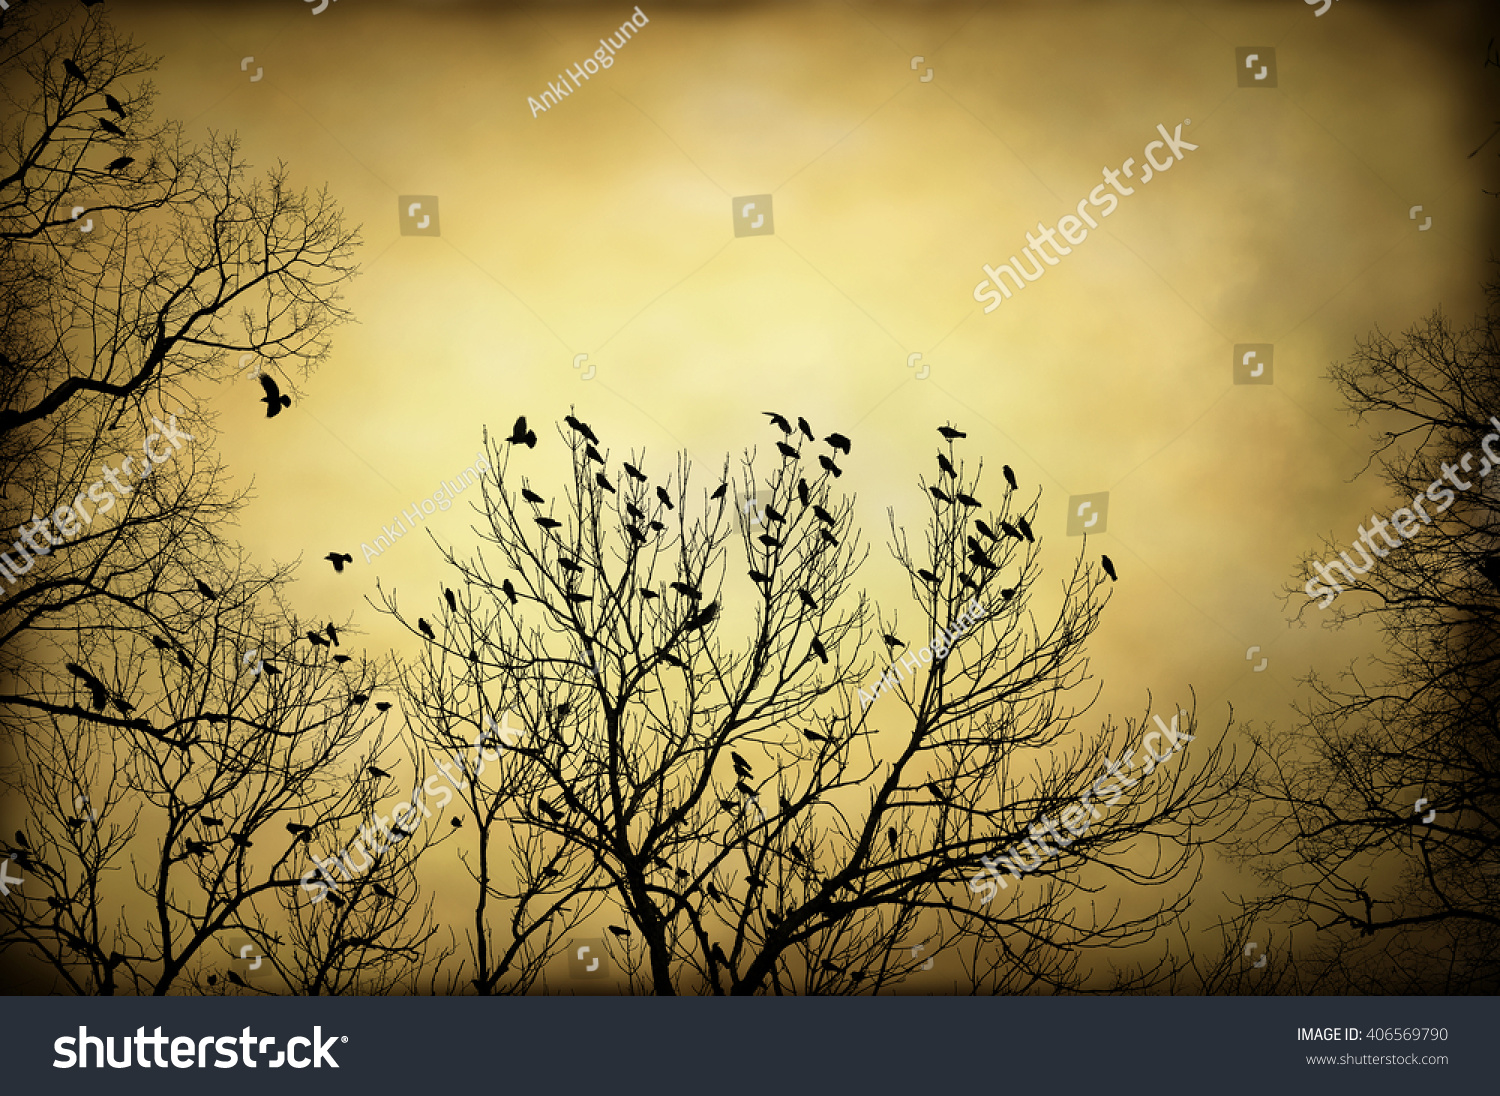 Artistic Textured Image Flock Crows Tree Stock Photo Royalty Free